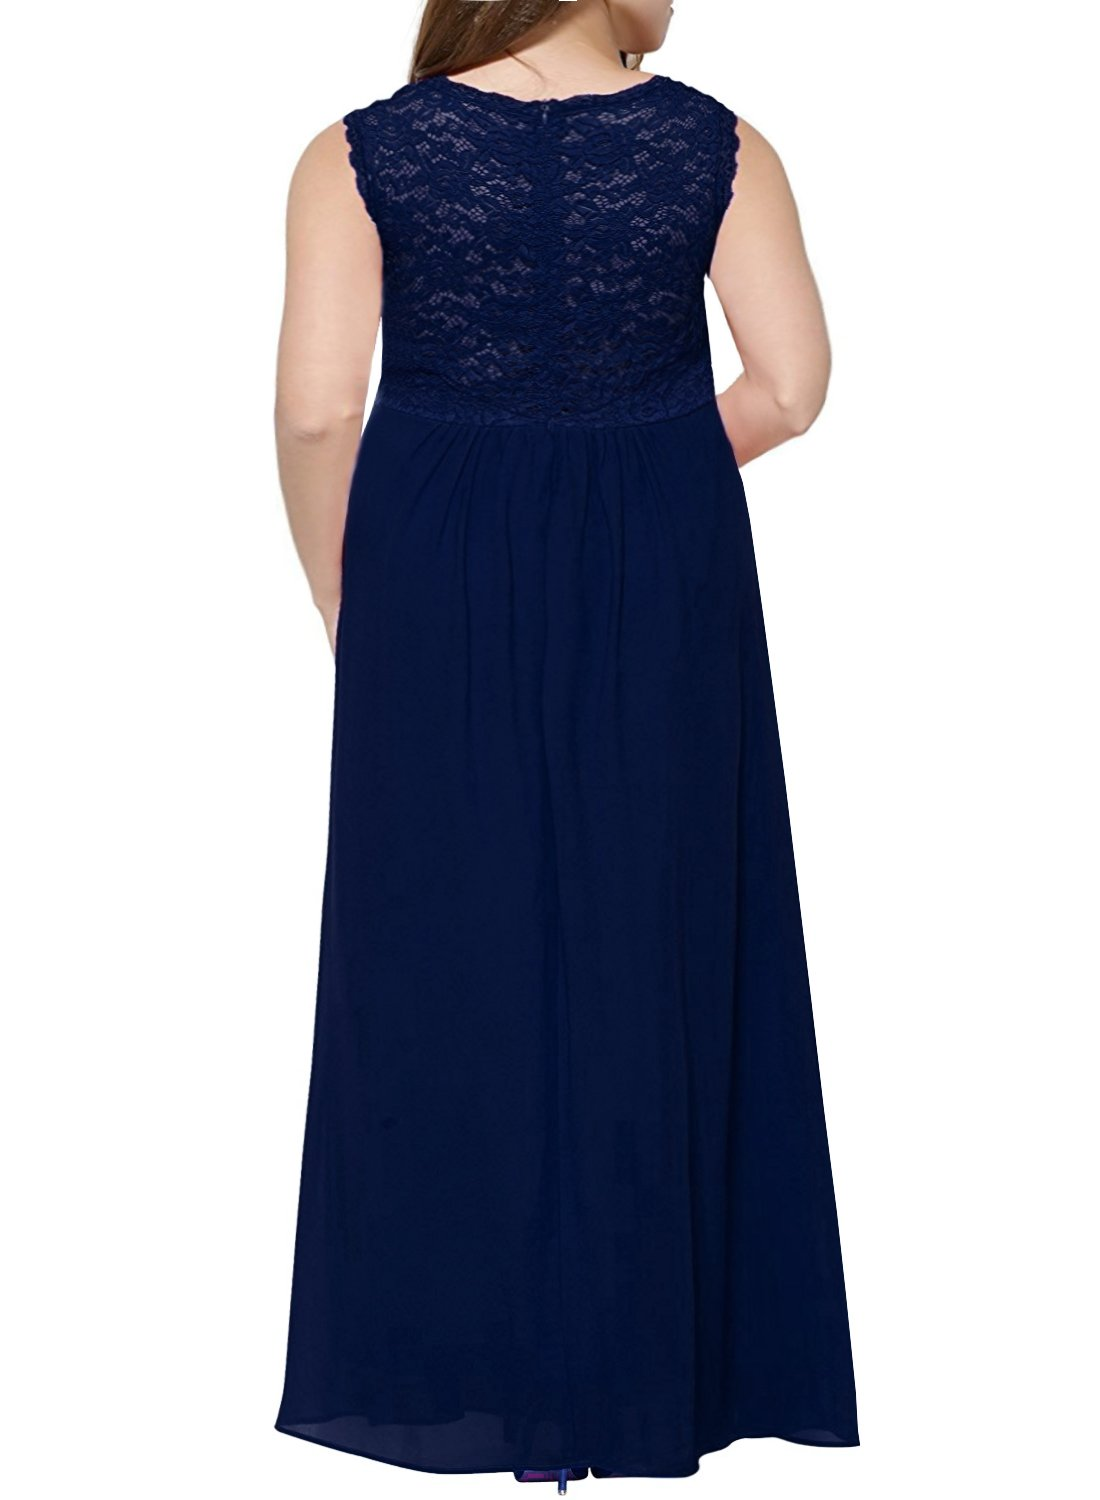 Nemidor Womens Deep V Neck Sleeveless Vintage Plus Size Bridesmaid